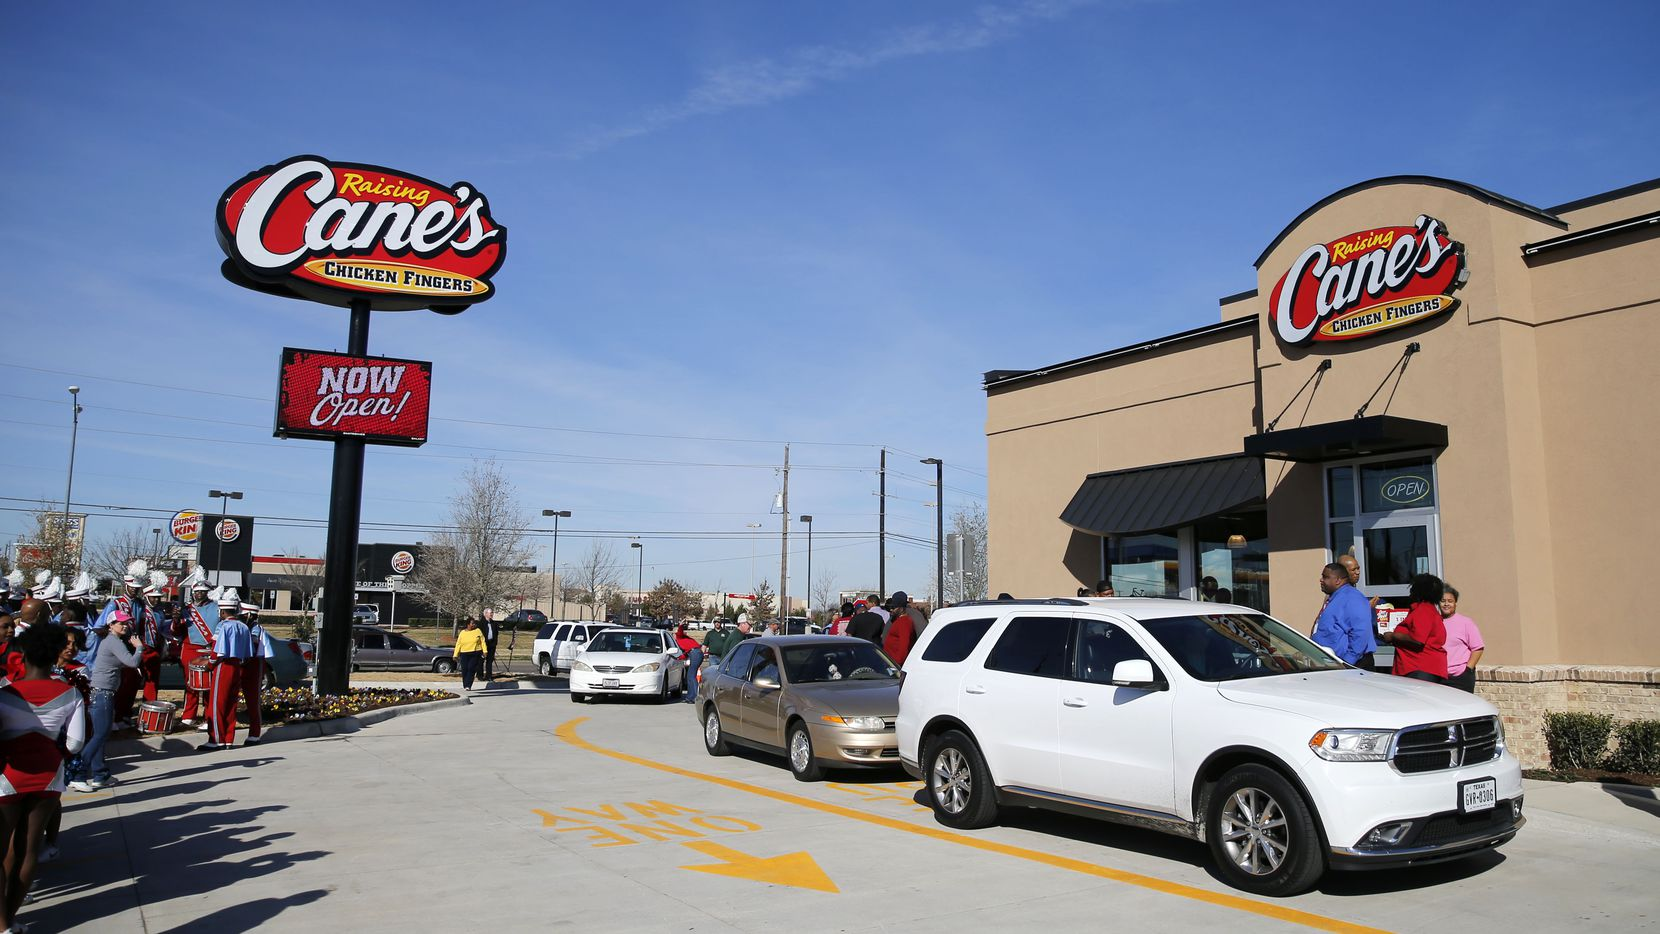 Cars line up at the grand opening of a Raising Cane's in Dallas on Feb. 16. A new study shows the number of chain restaurants on the rise in D-FW.(Vernon Bryant/The Dallas Morning News)